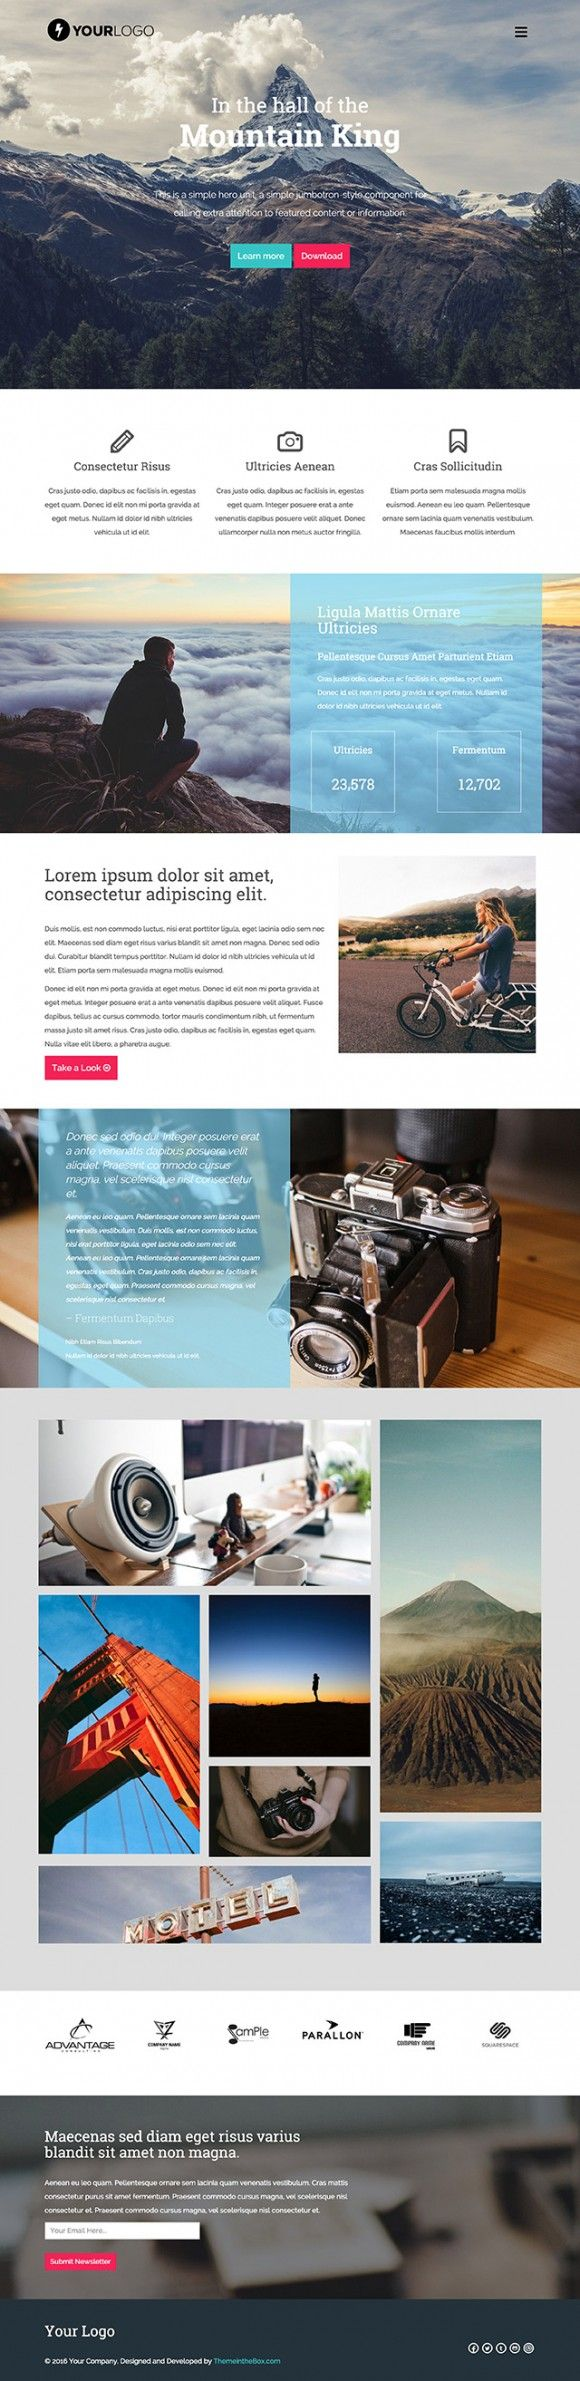 Free Download : Mountain King – Onepage HTML5/CSS3 Template